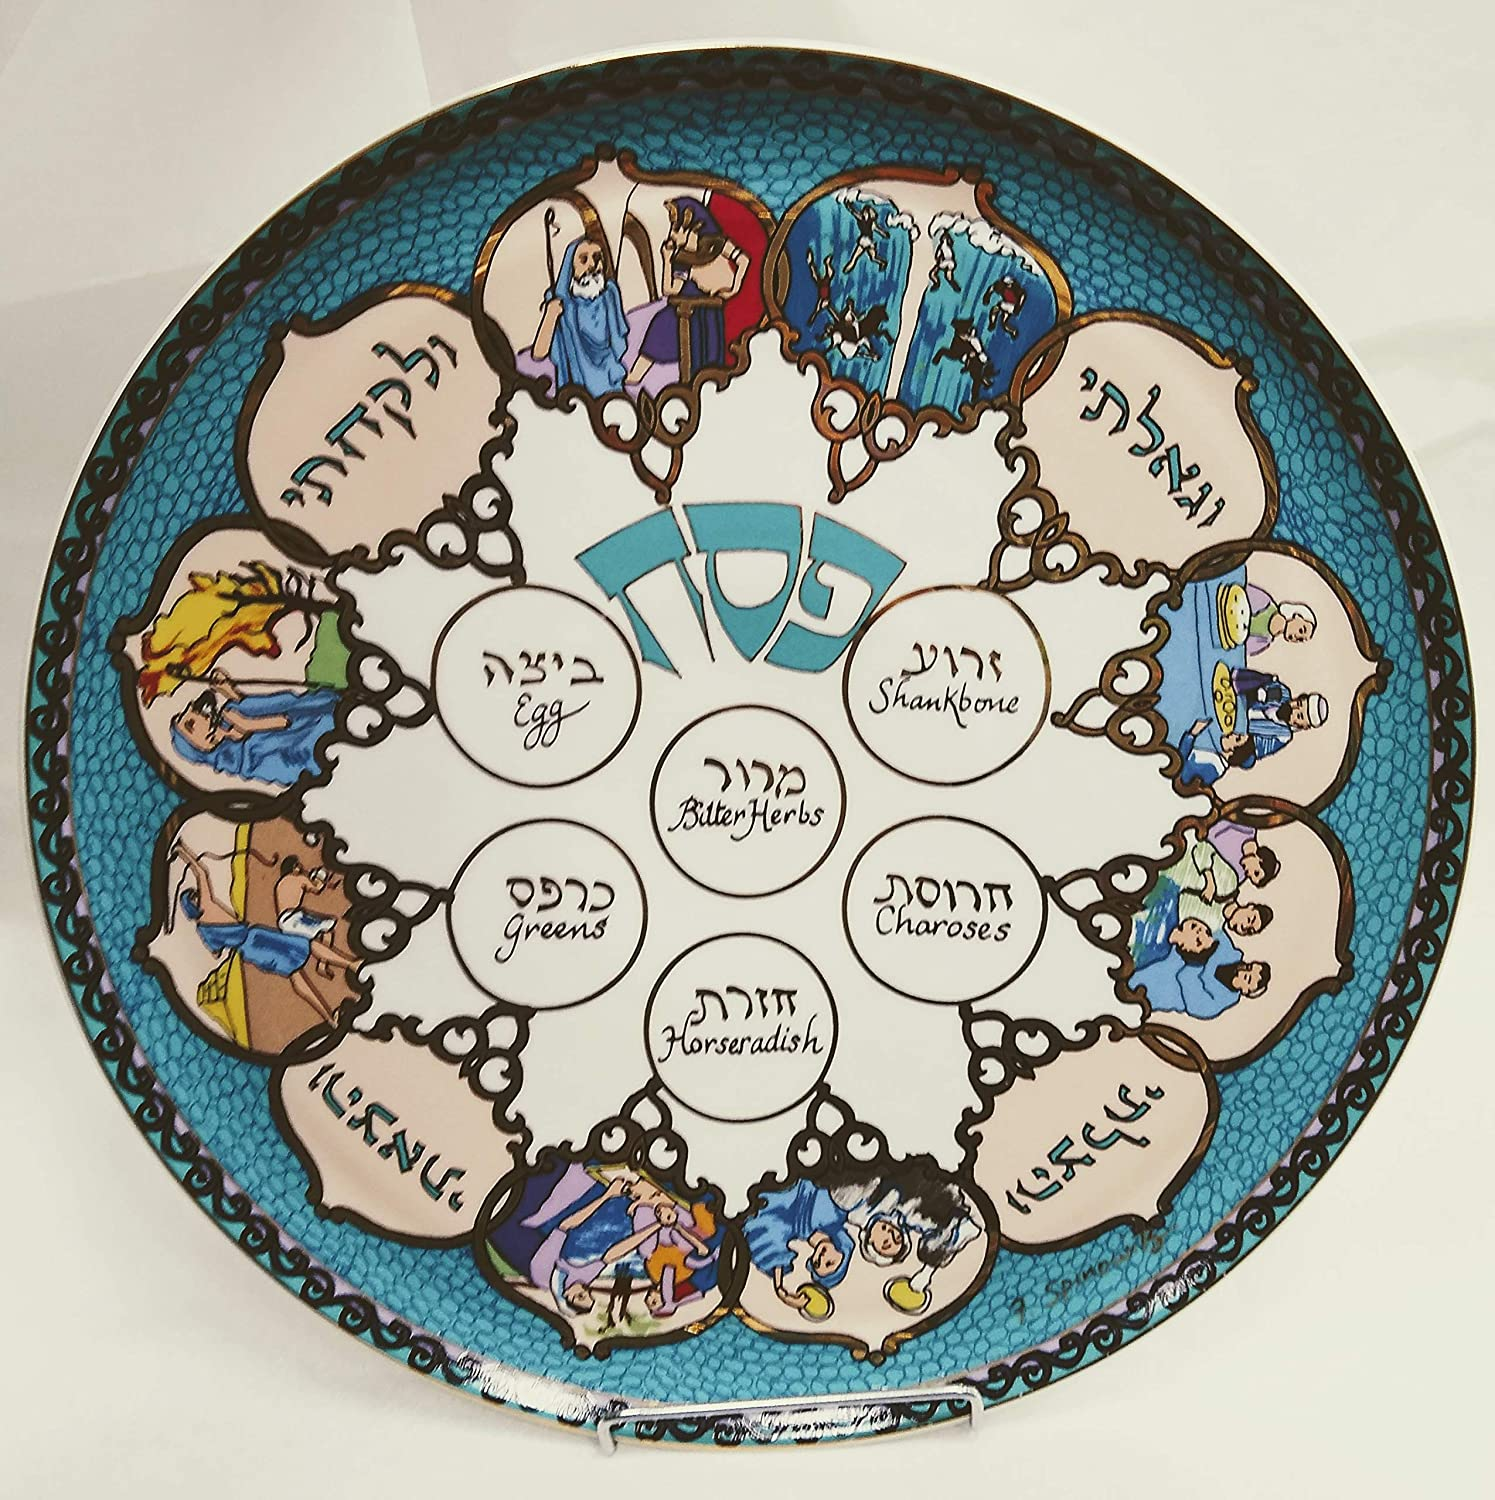 Ceramic Passover Seder Plate with Painted Illustrations